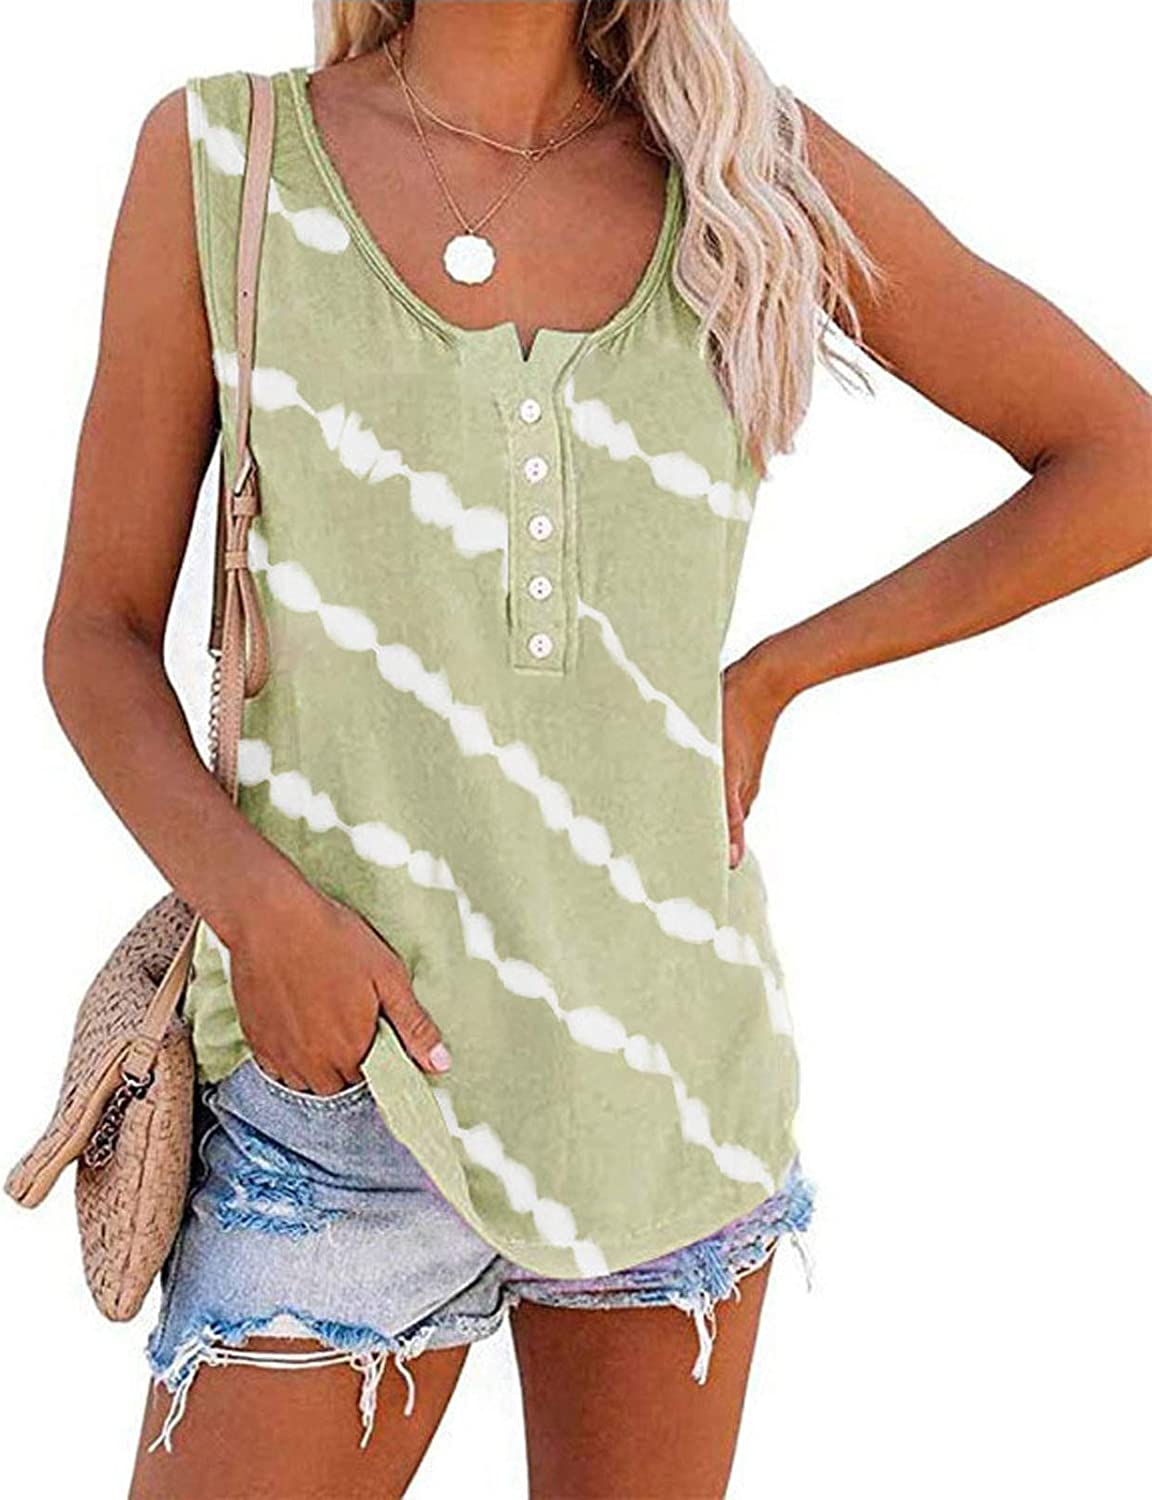 Aukbays Womens Striped Jersey Tank Top Loose Casual V Neck Sleeveless Tunic Shirt Loose Fit Crop Tops